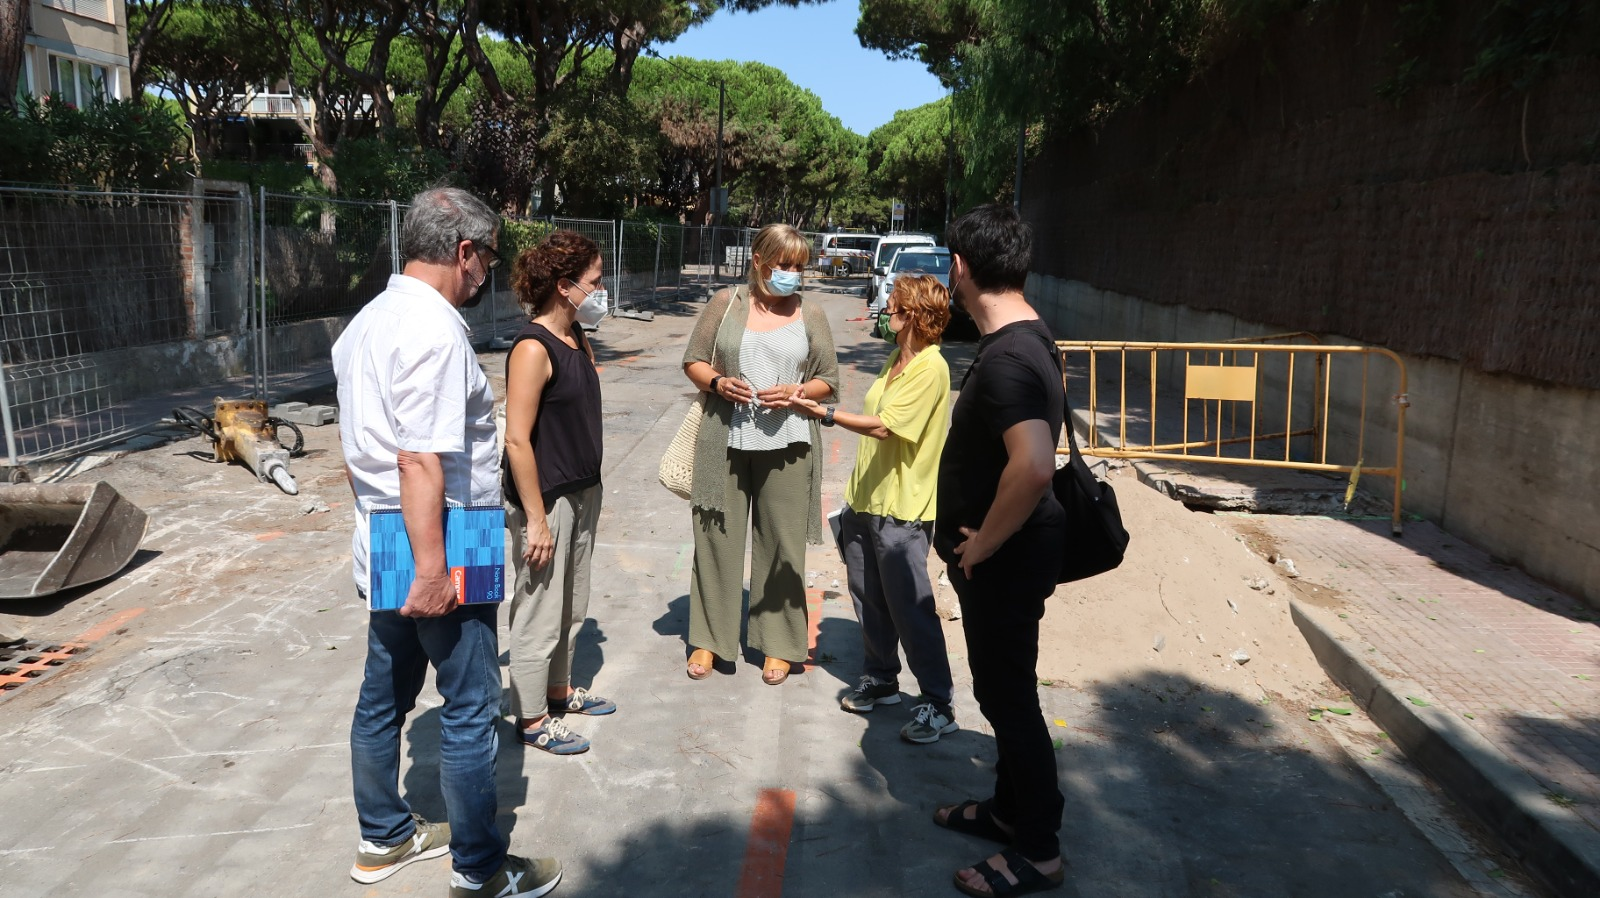 New interventions to improve public space in Gava Mar